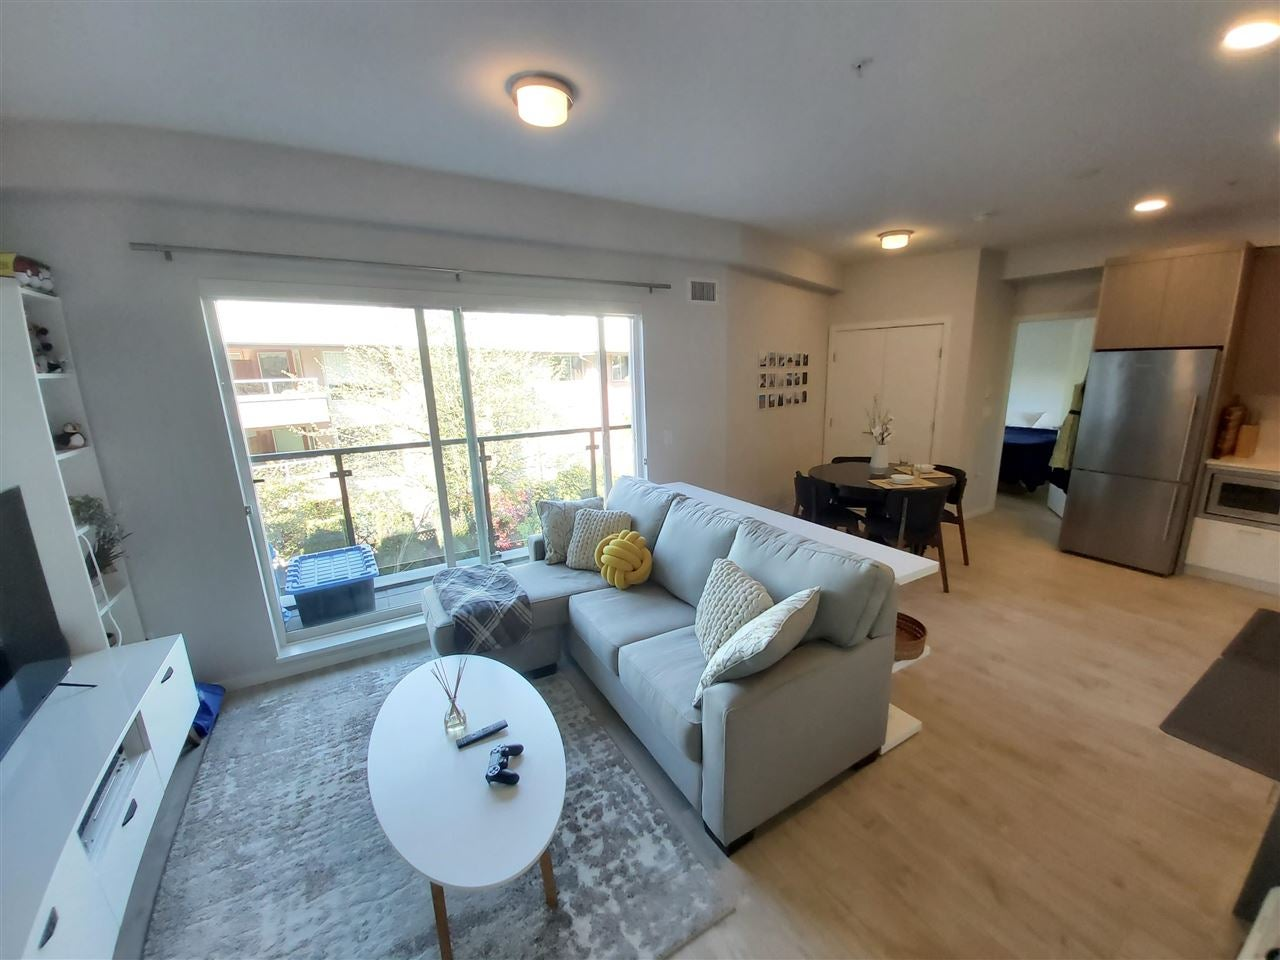 219 6283 KINGSWAY - Highgate Apartment/Condo for sale, 2 Bedrooms (R2576169) - #3